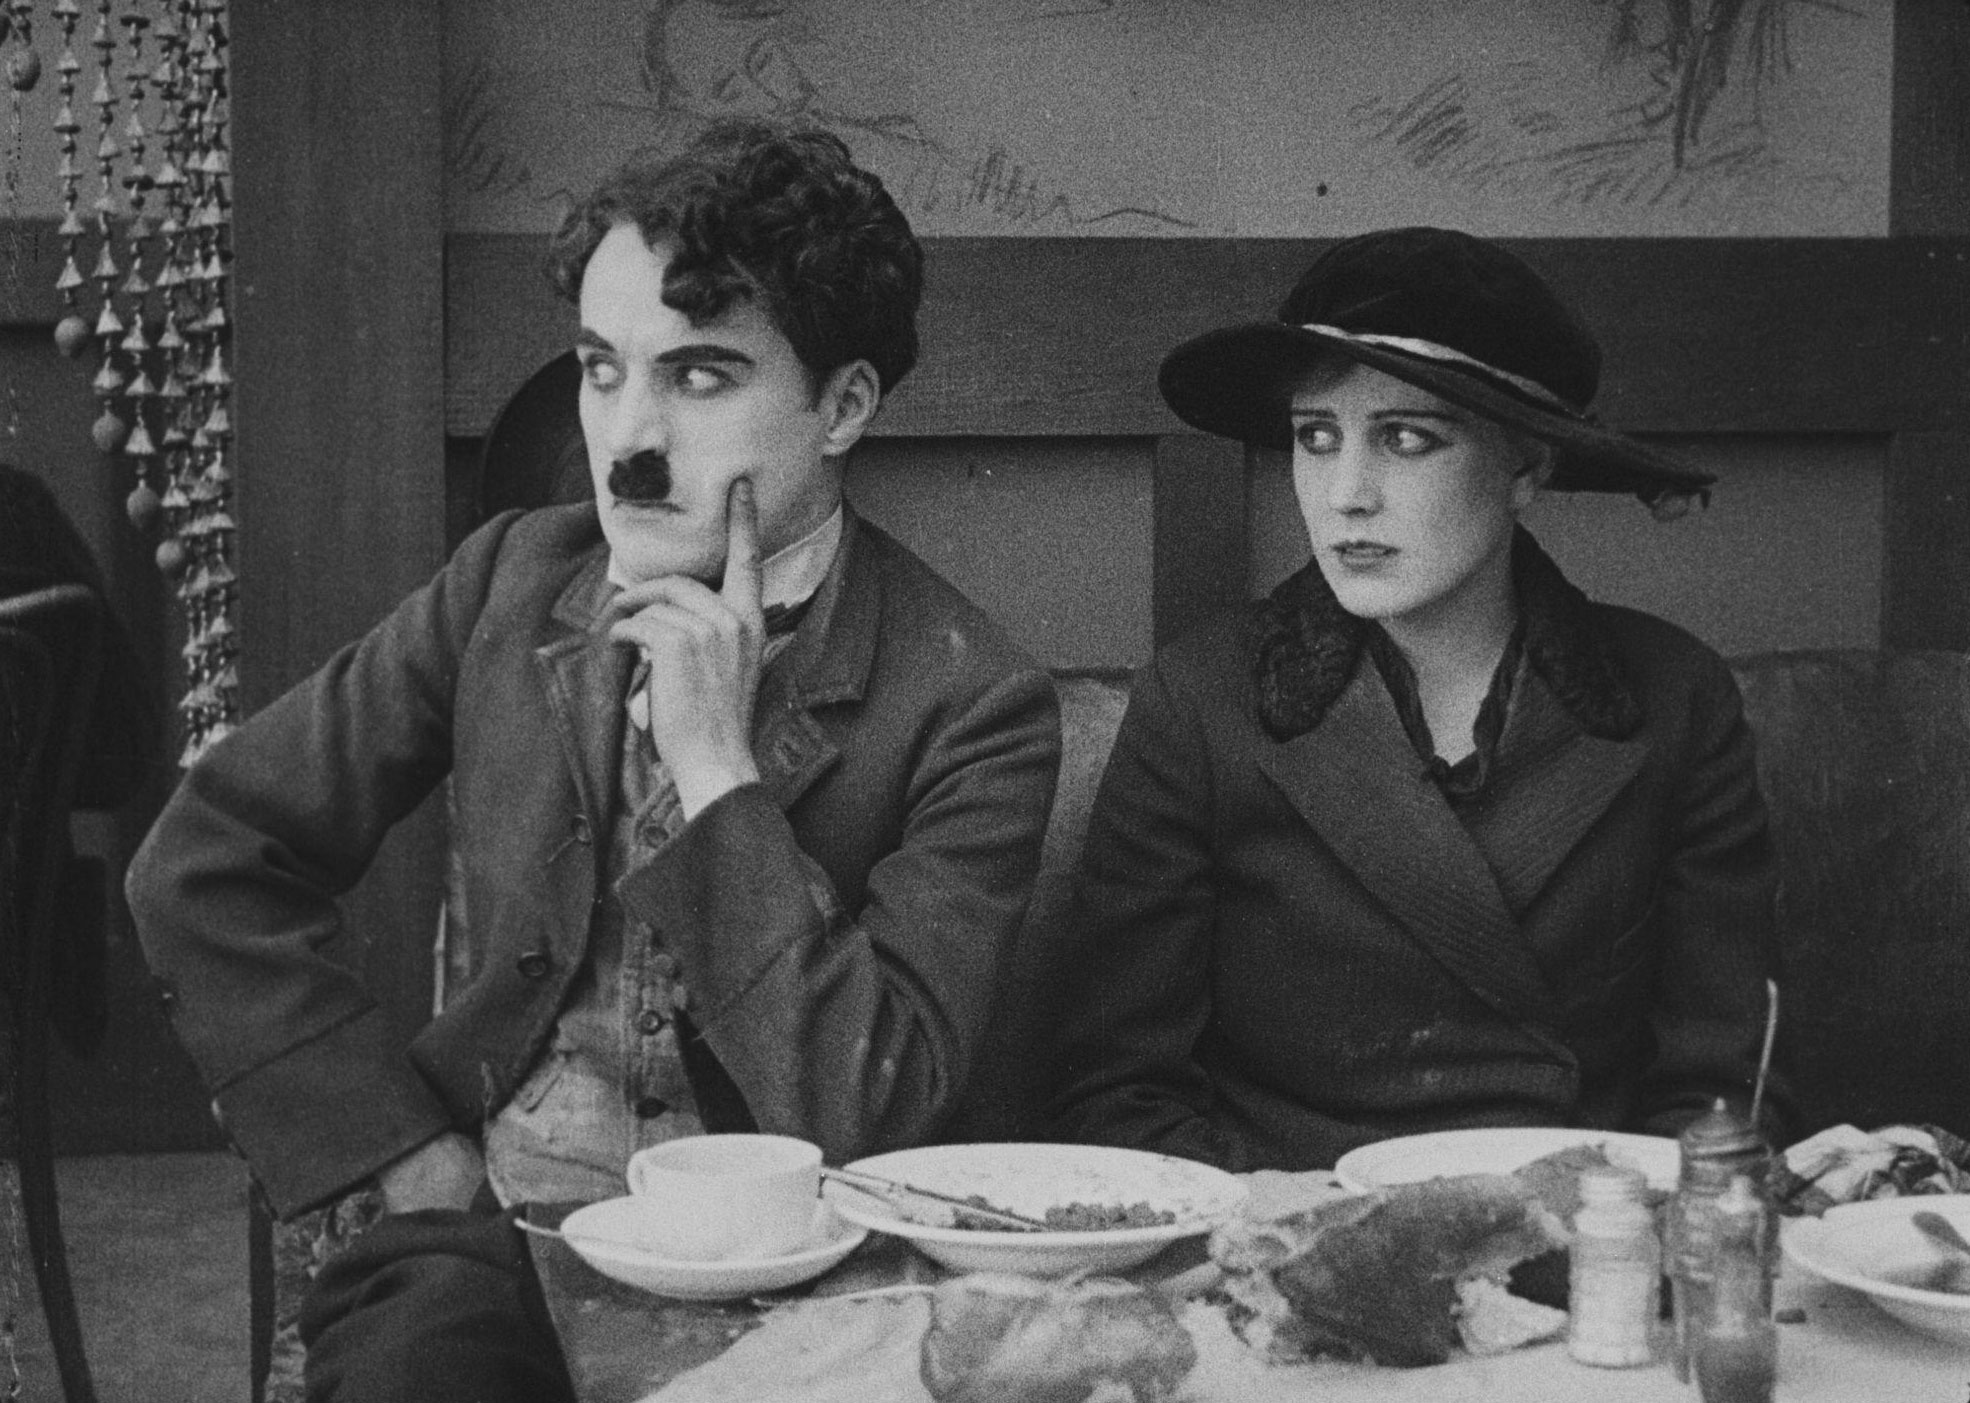 7 Art Cinema | Official Website | Charlie Chaplin - 1917 - The Immigrant | 13 | Film Photograph